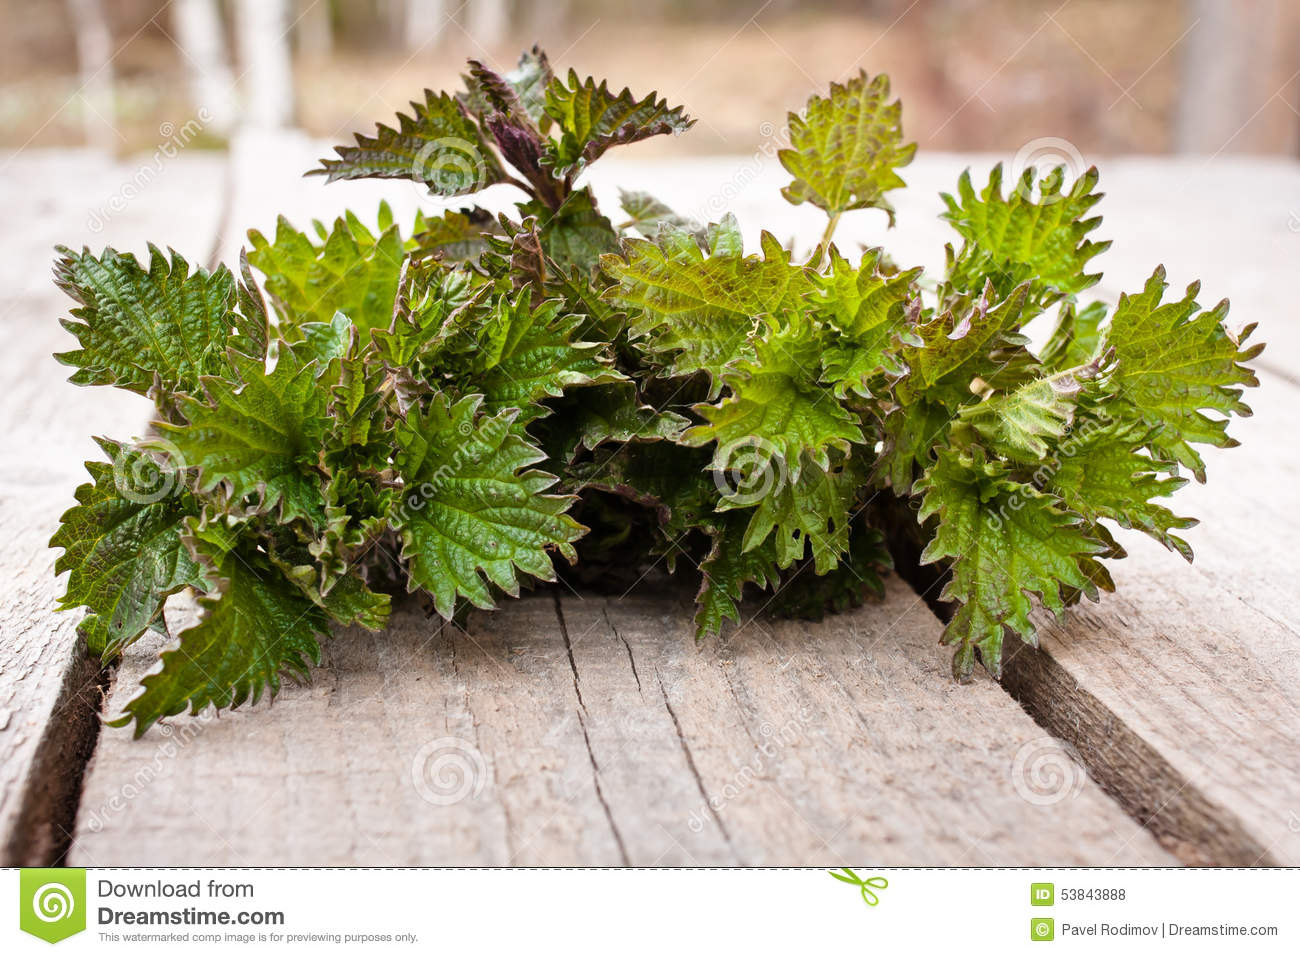 Nettle on the wooden table